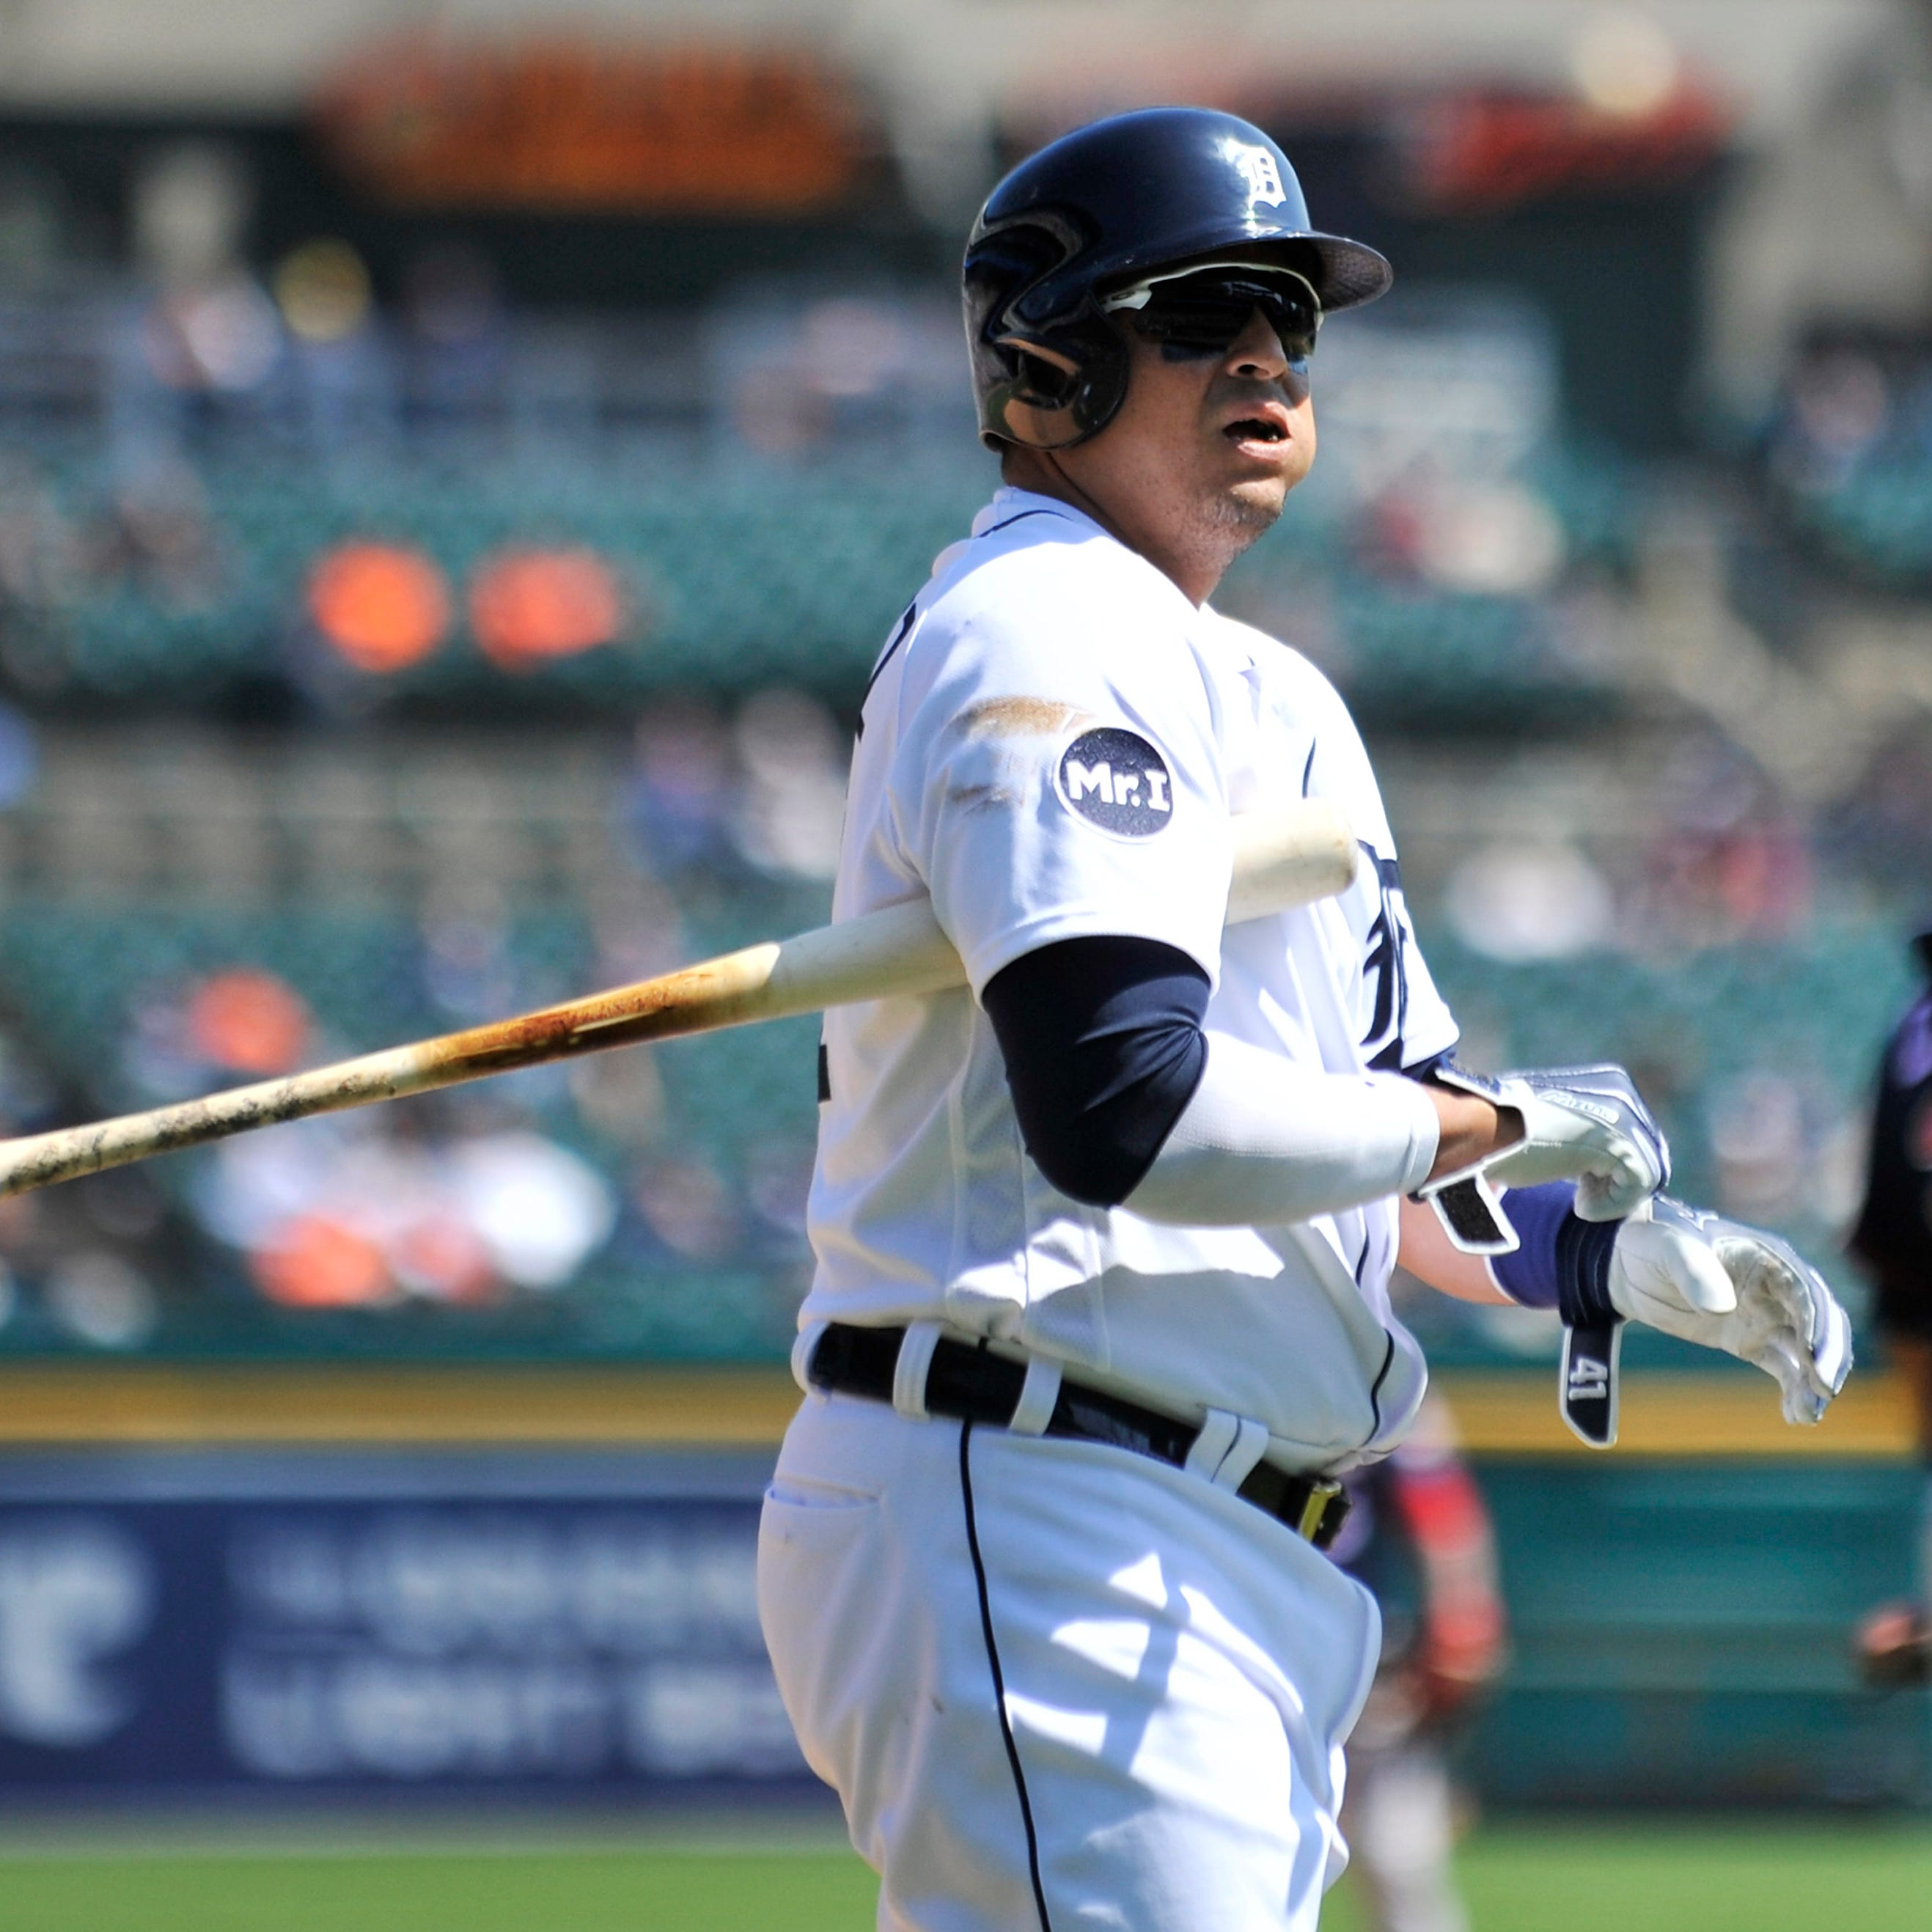 Henning: Tigers' Victor Martinez wrapping up playing days, properly